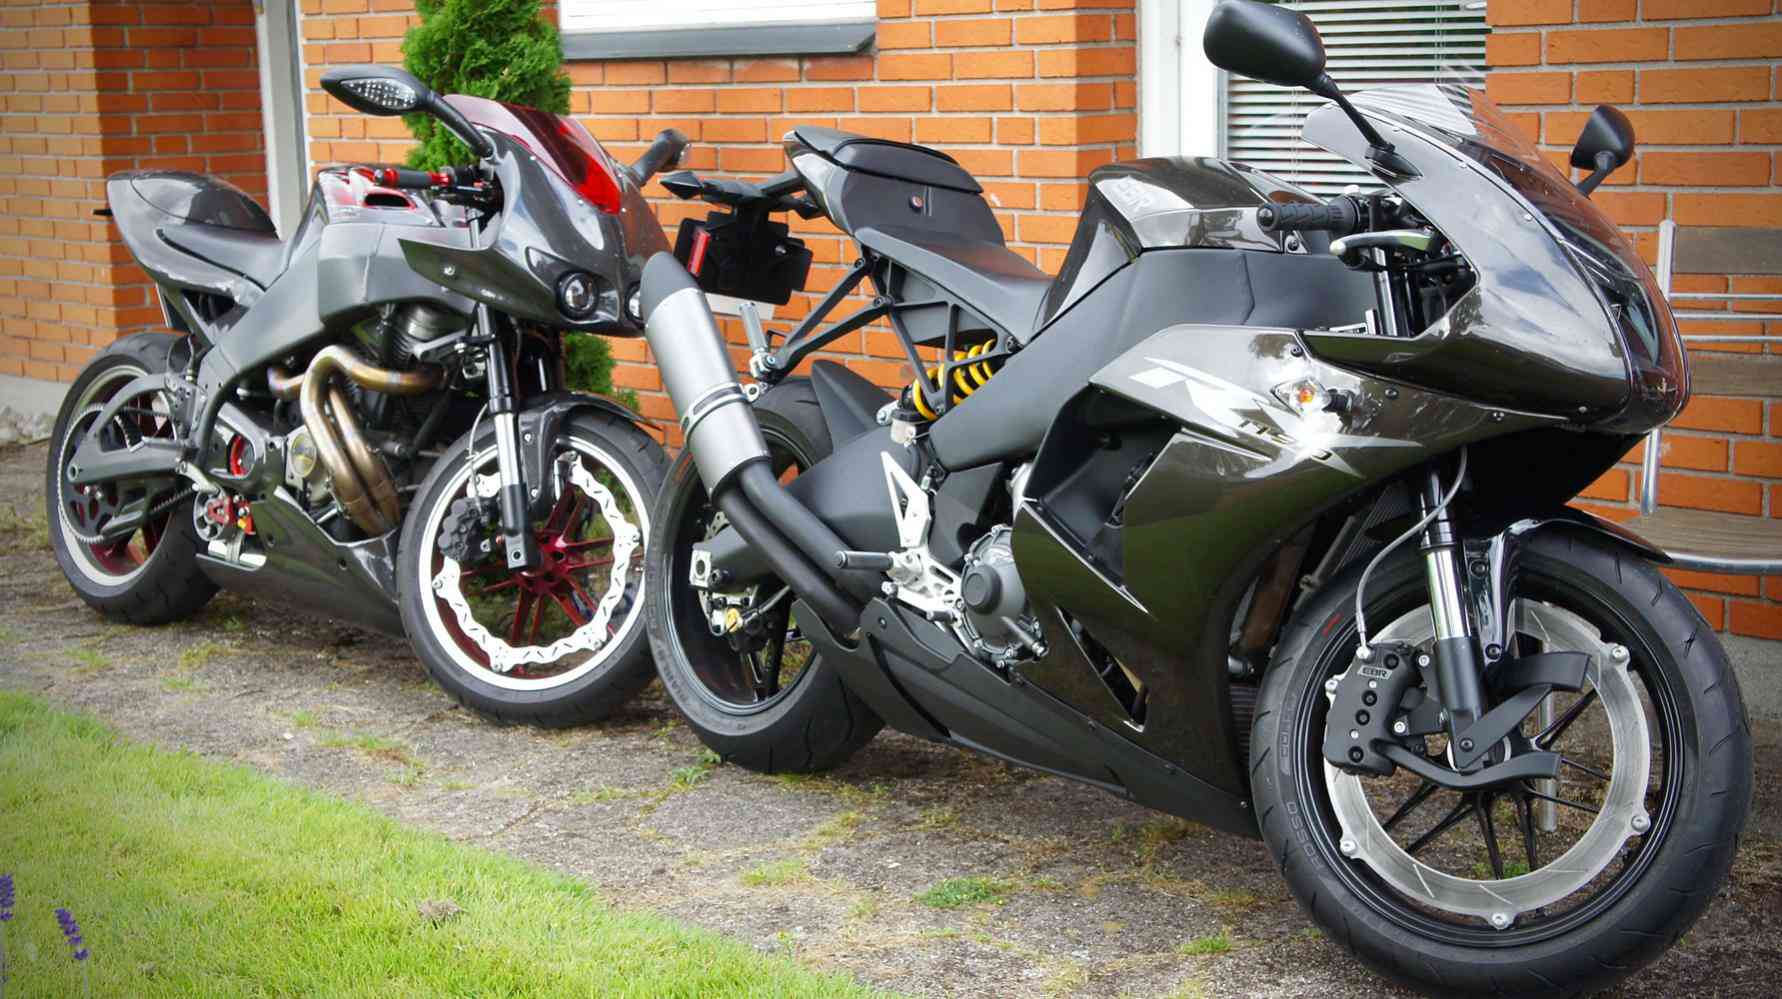 EBR 1190RX and XB12R carbon